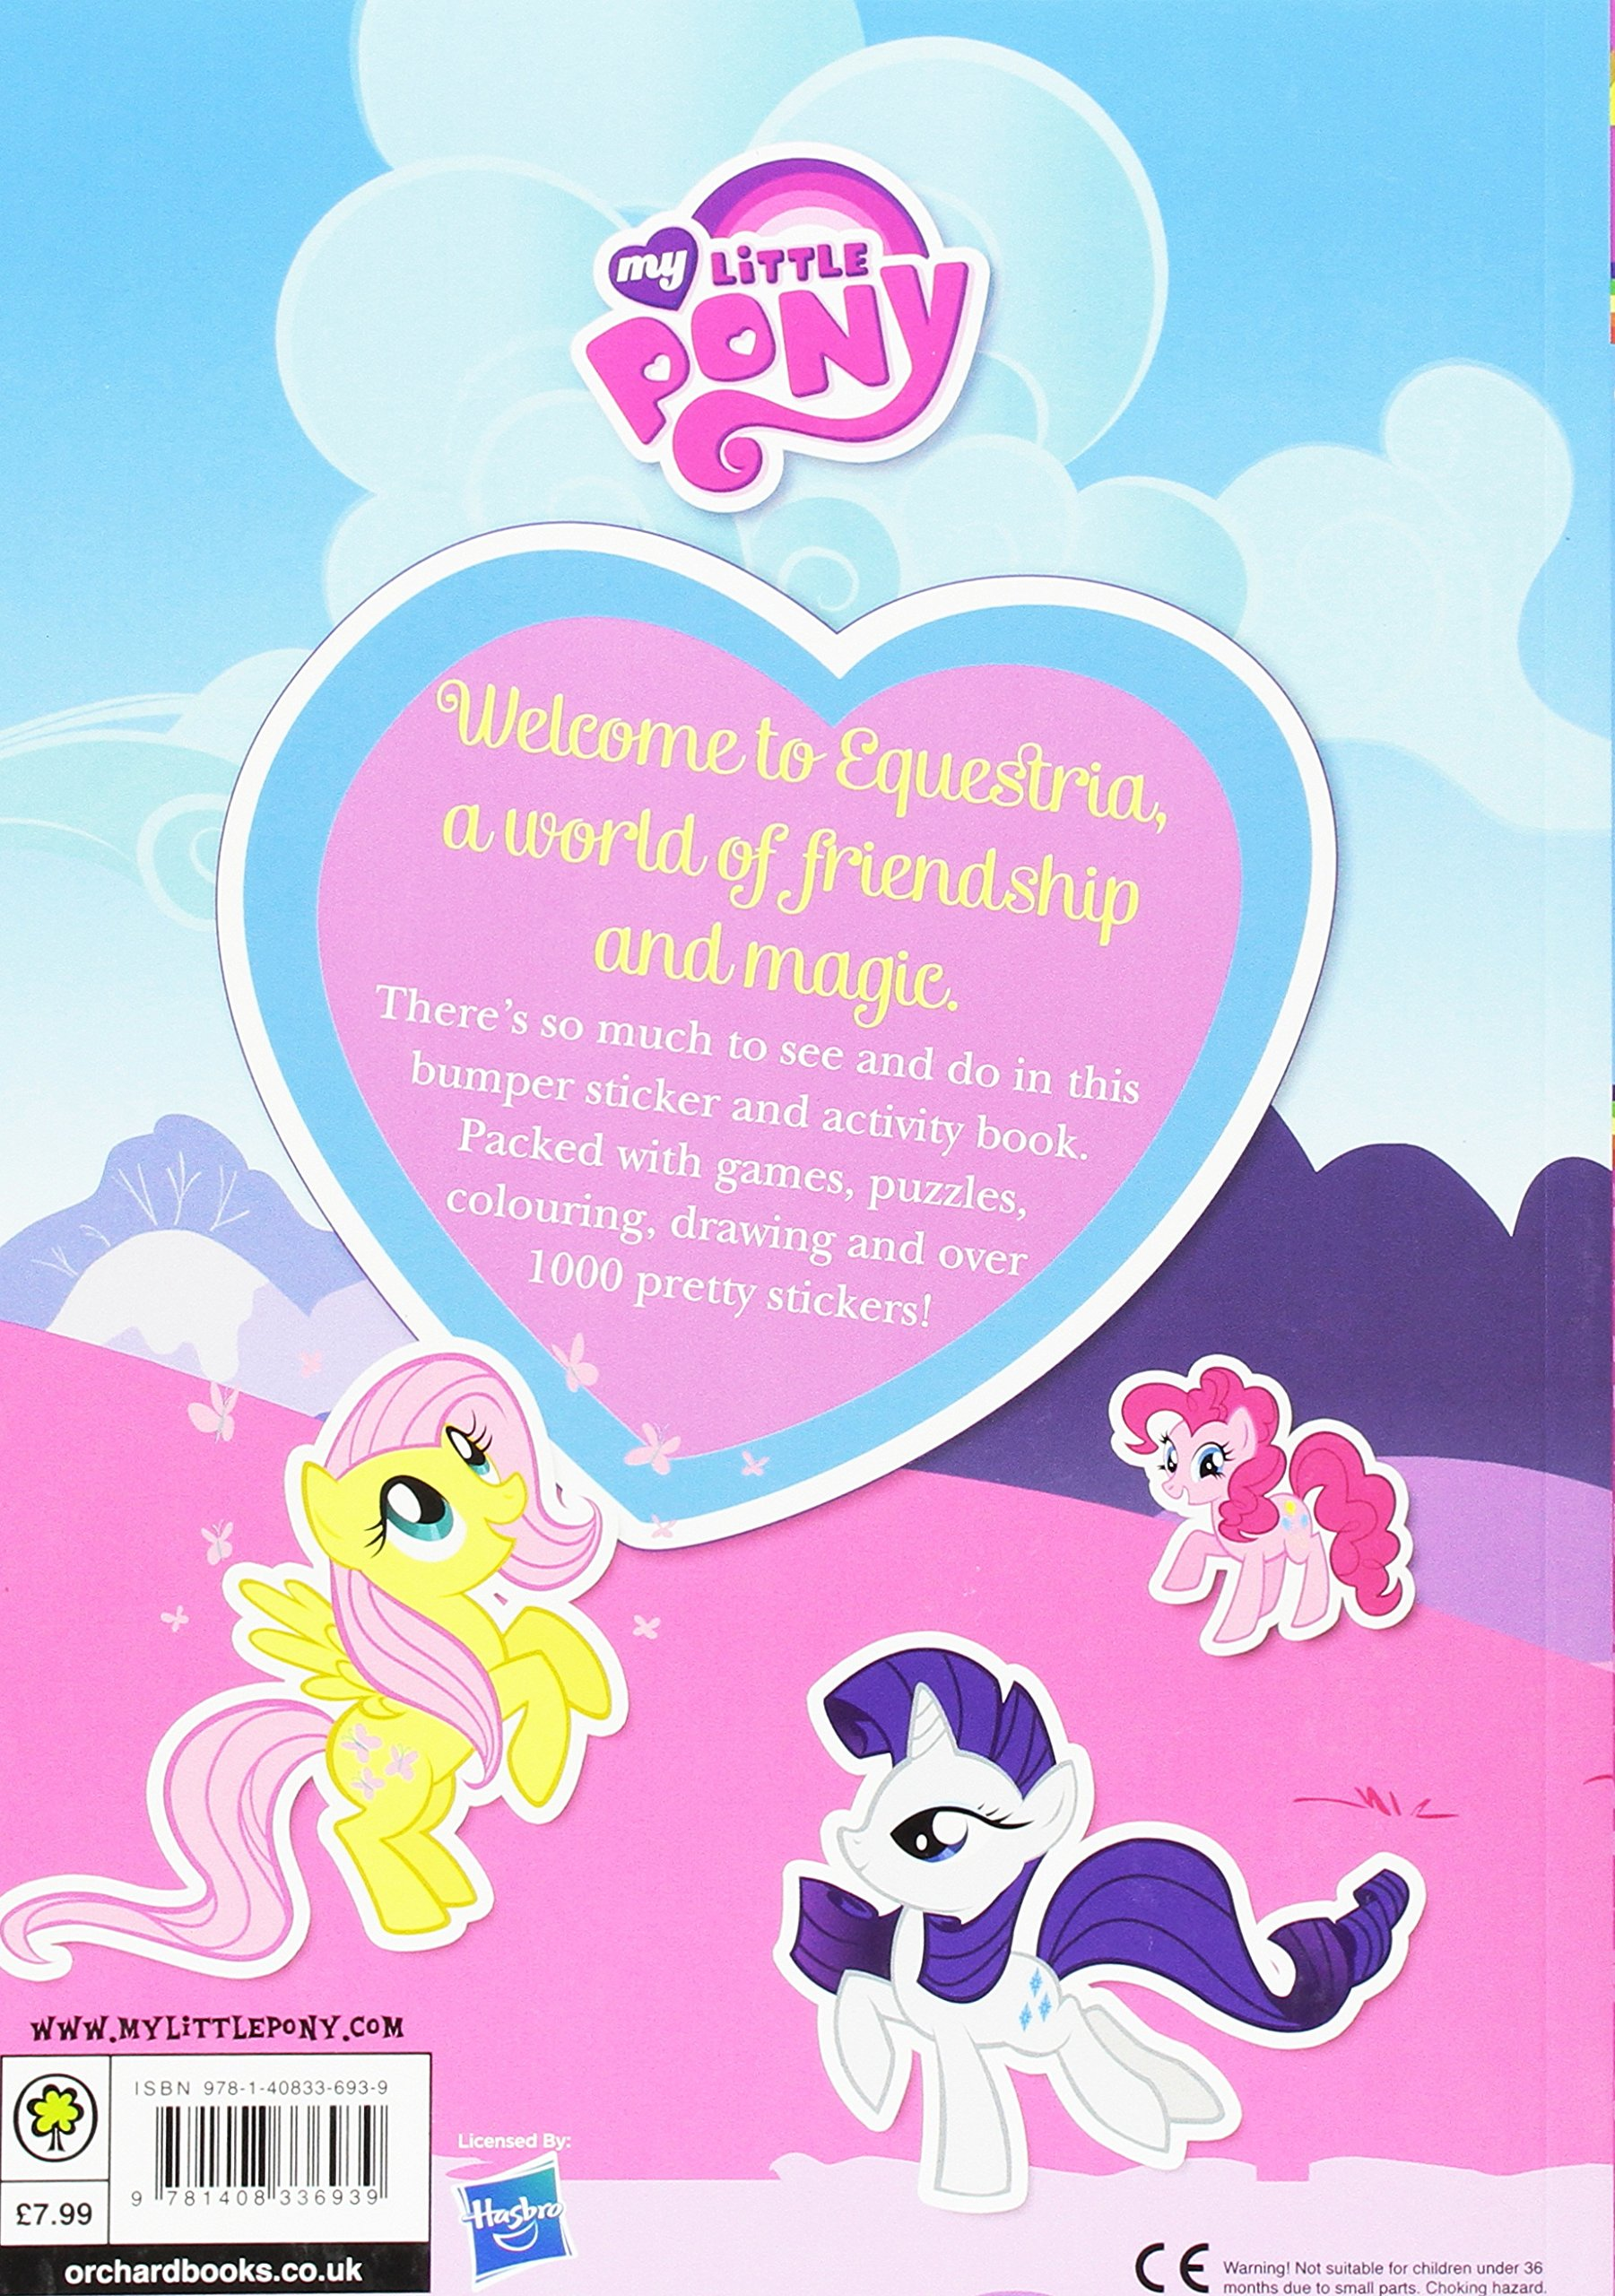 My little pony colouring book uk - Bumper Sticker Book My Little Pony Amazon Co Uk My Little Pony 9781408336939 Books